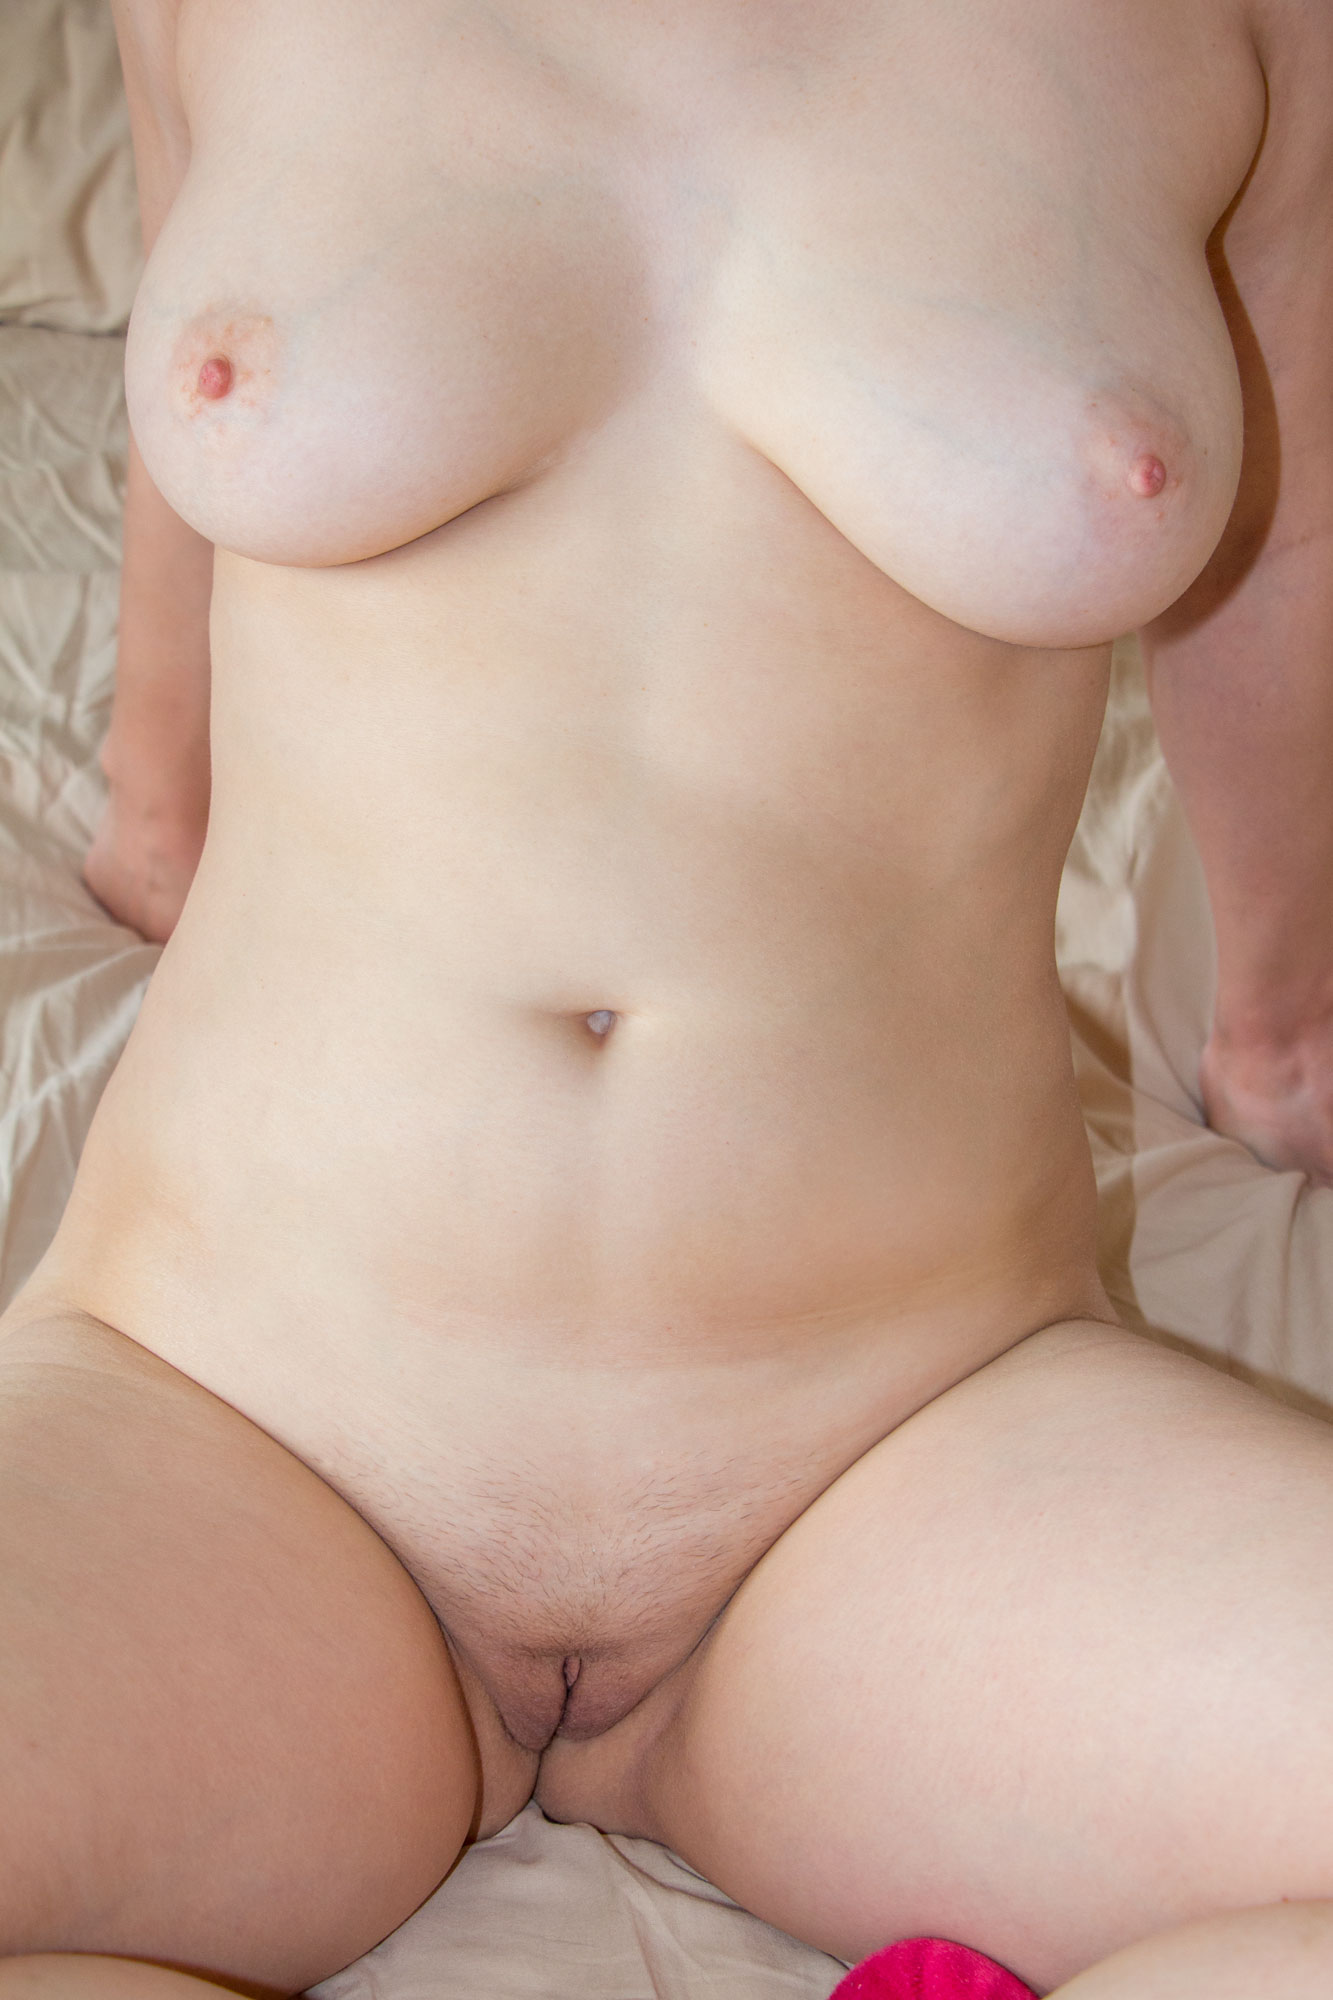 Frontal nude